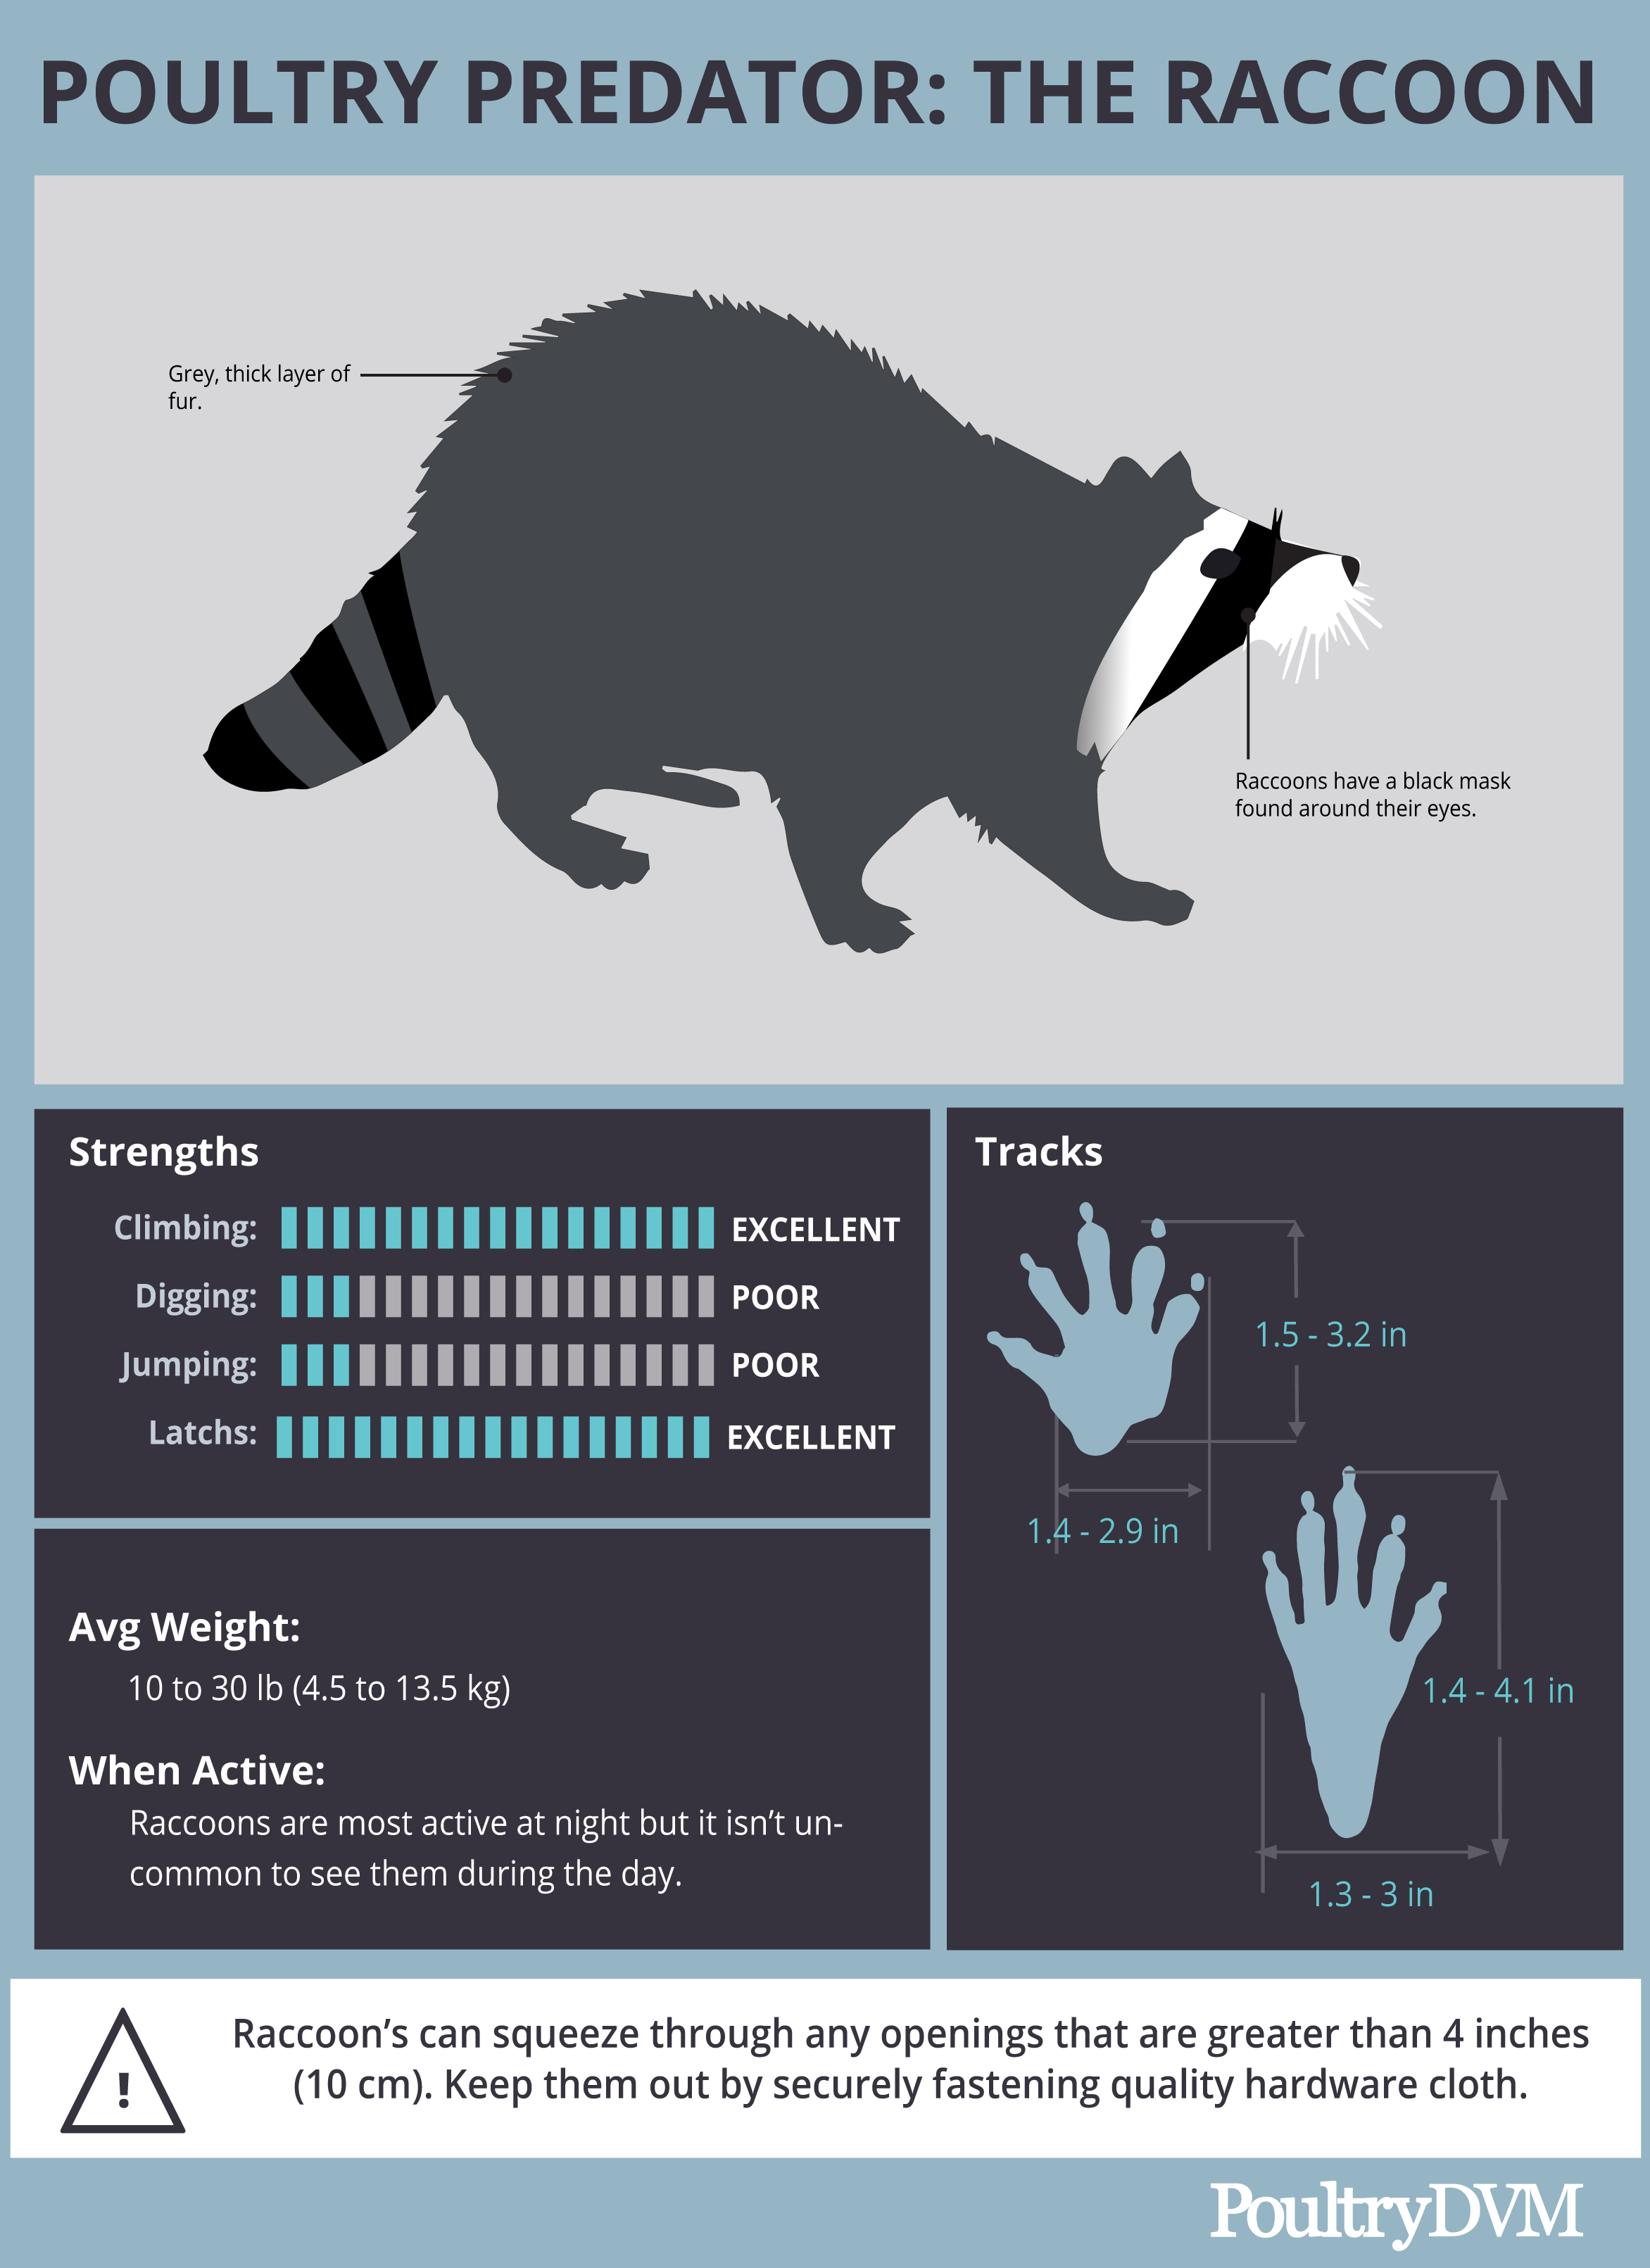 PoultryDVM Predator Profile - The Raccoon